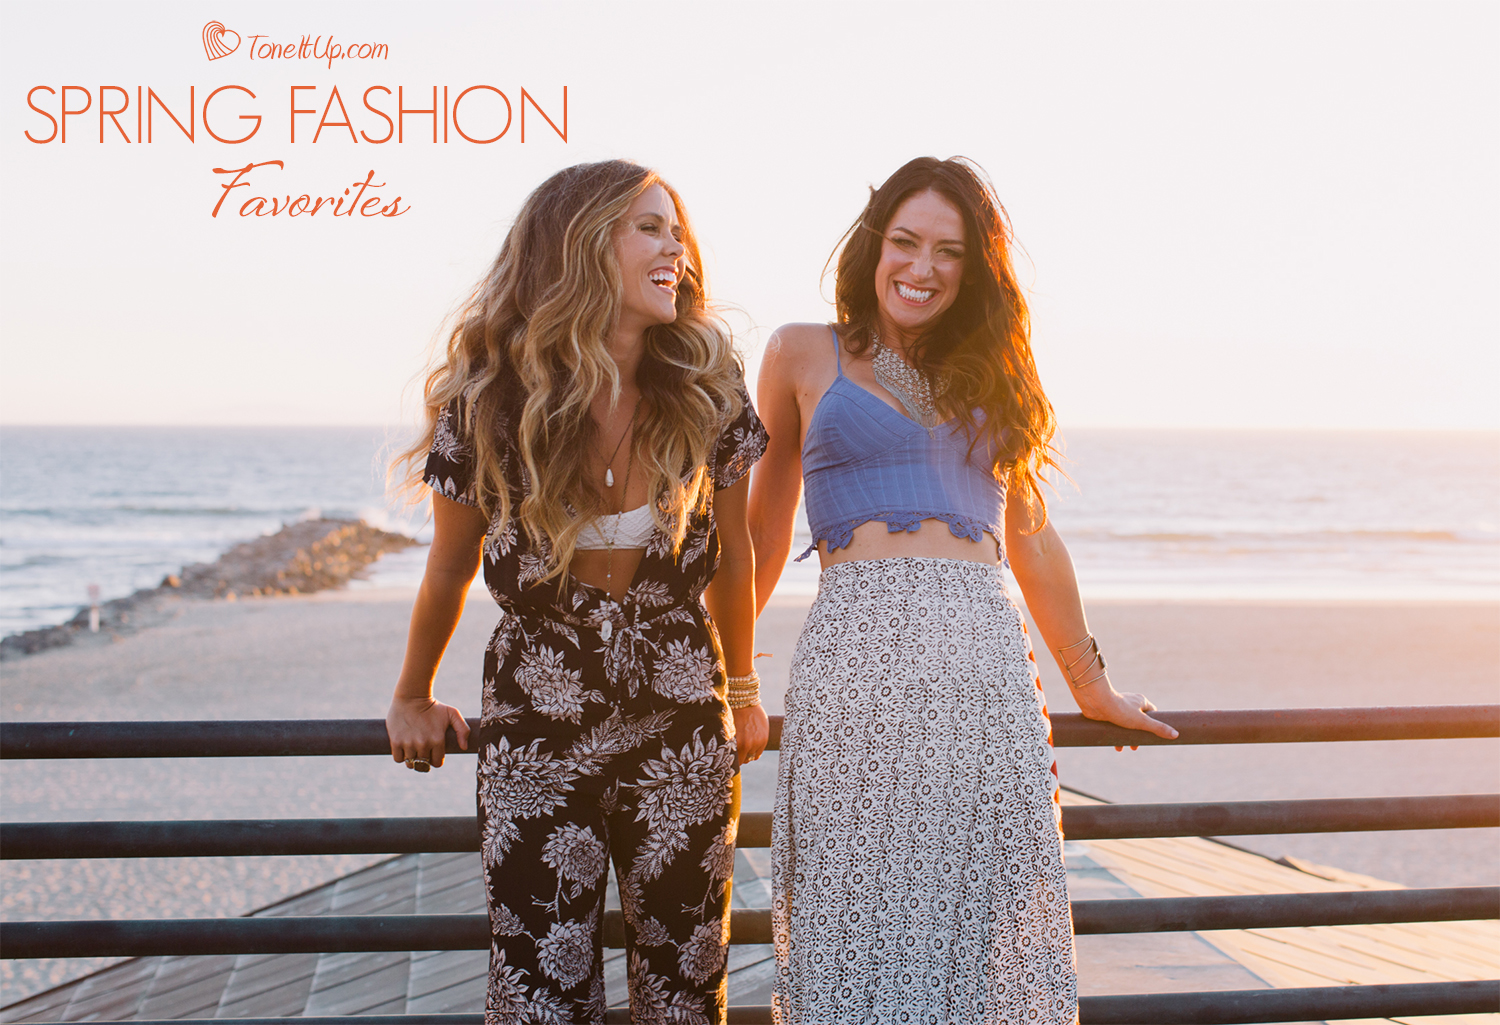 Our Spring Fashion Favorites     ToneItUp com The blooming season embodies a beautiful sense of new beginnings  It s a  time to ramp up your healthy habits  refocus on goals and of course